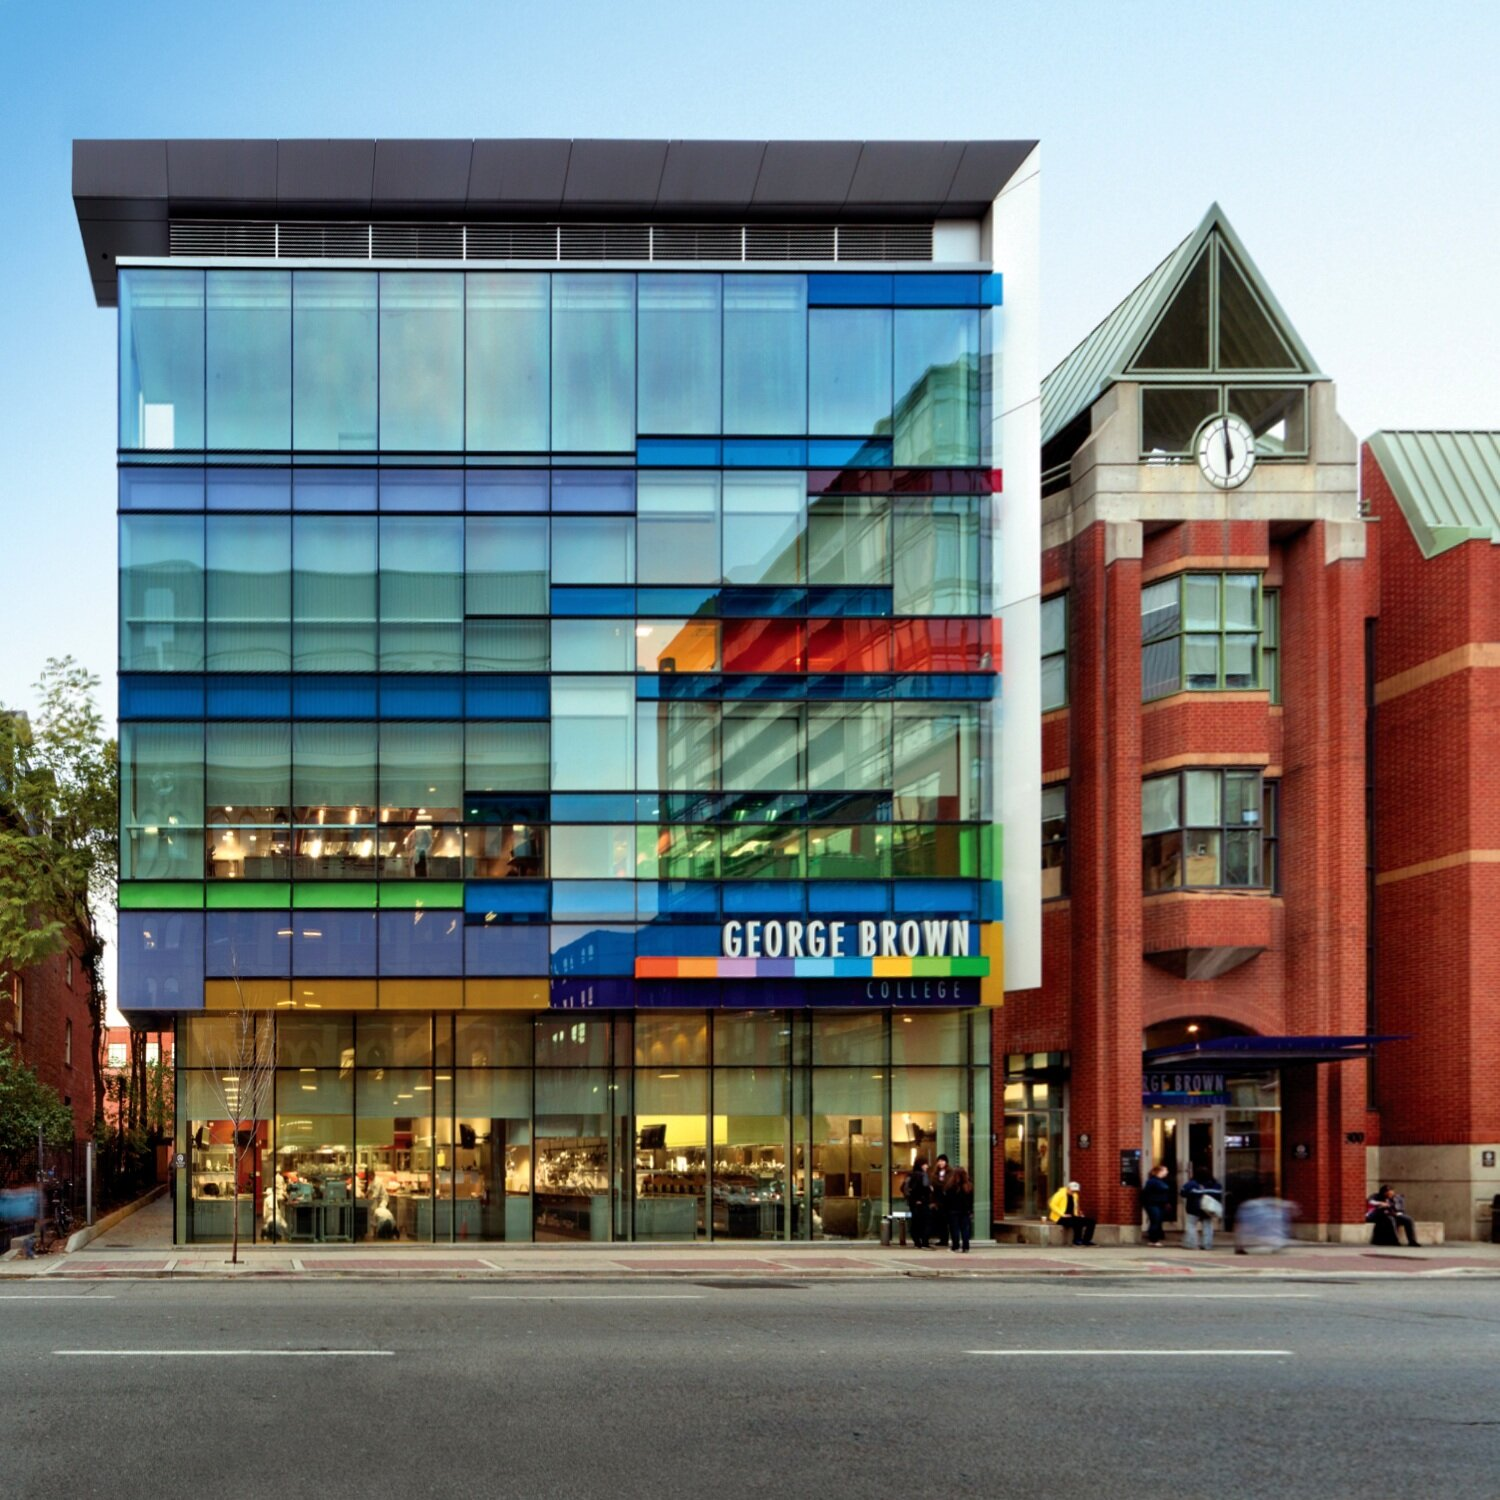 The Centre for Hospitality & Culinary Arts building at 300 Adelaide Street East, George Brown College, Toronto